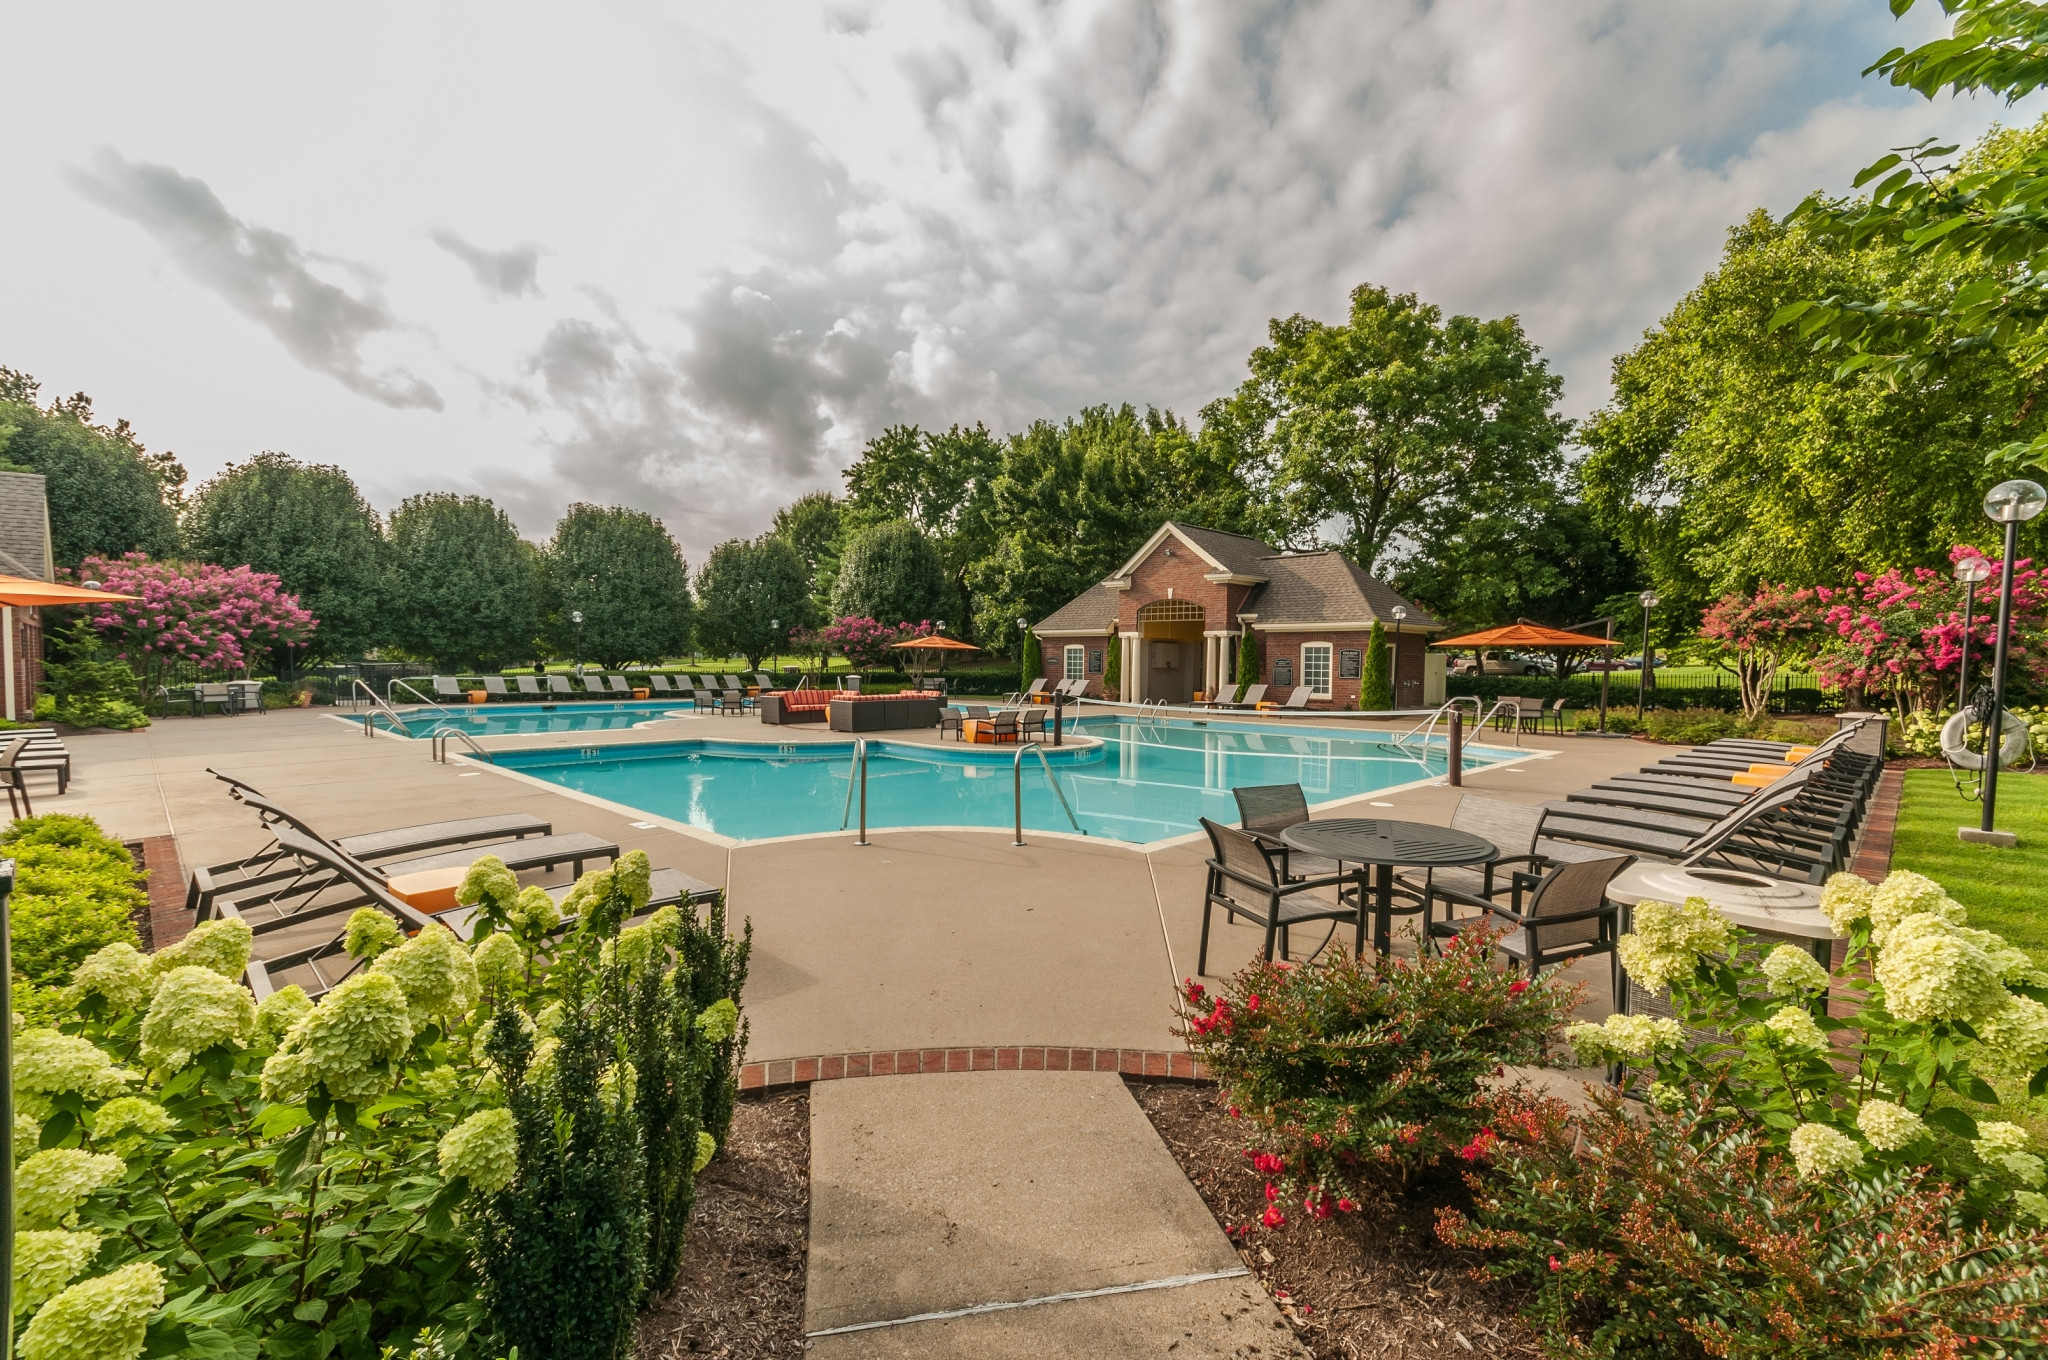 Cherry creek apartments in hermitage tn 37076 for Cherrycreek